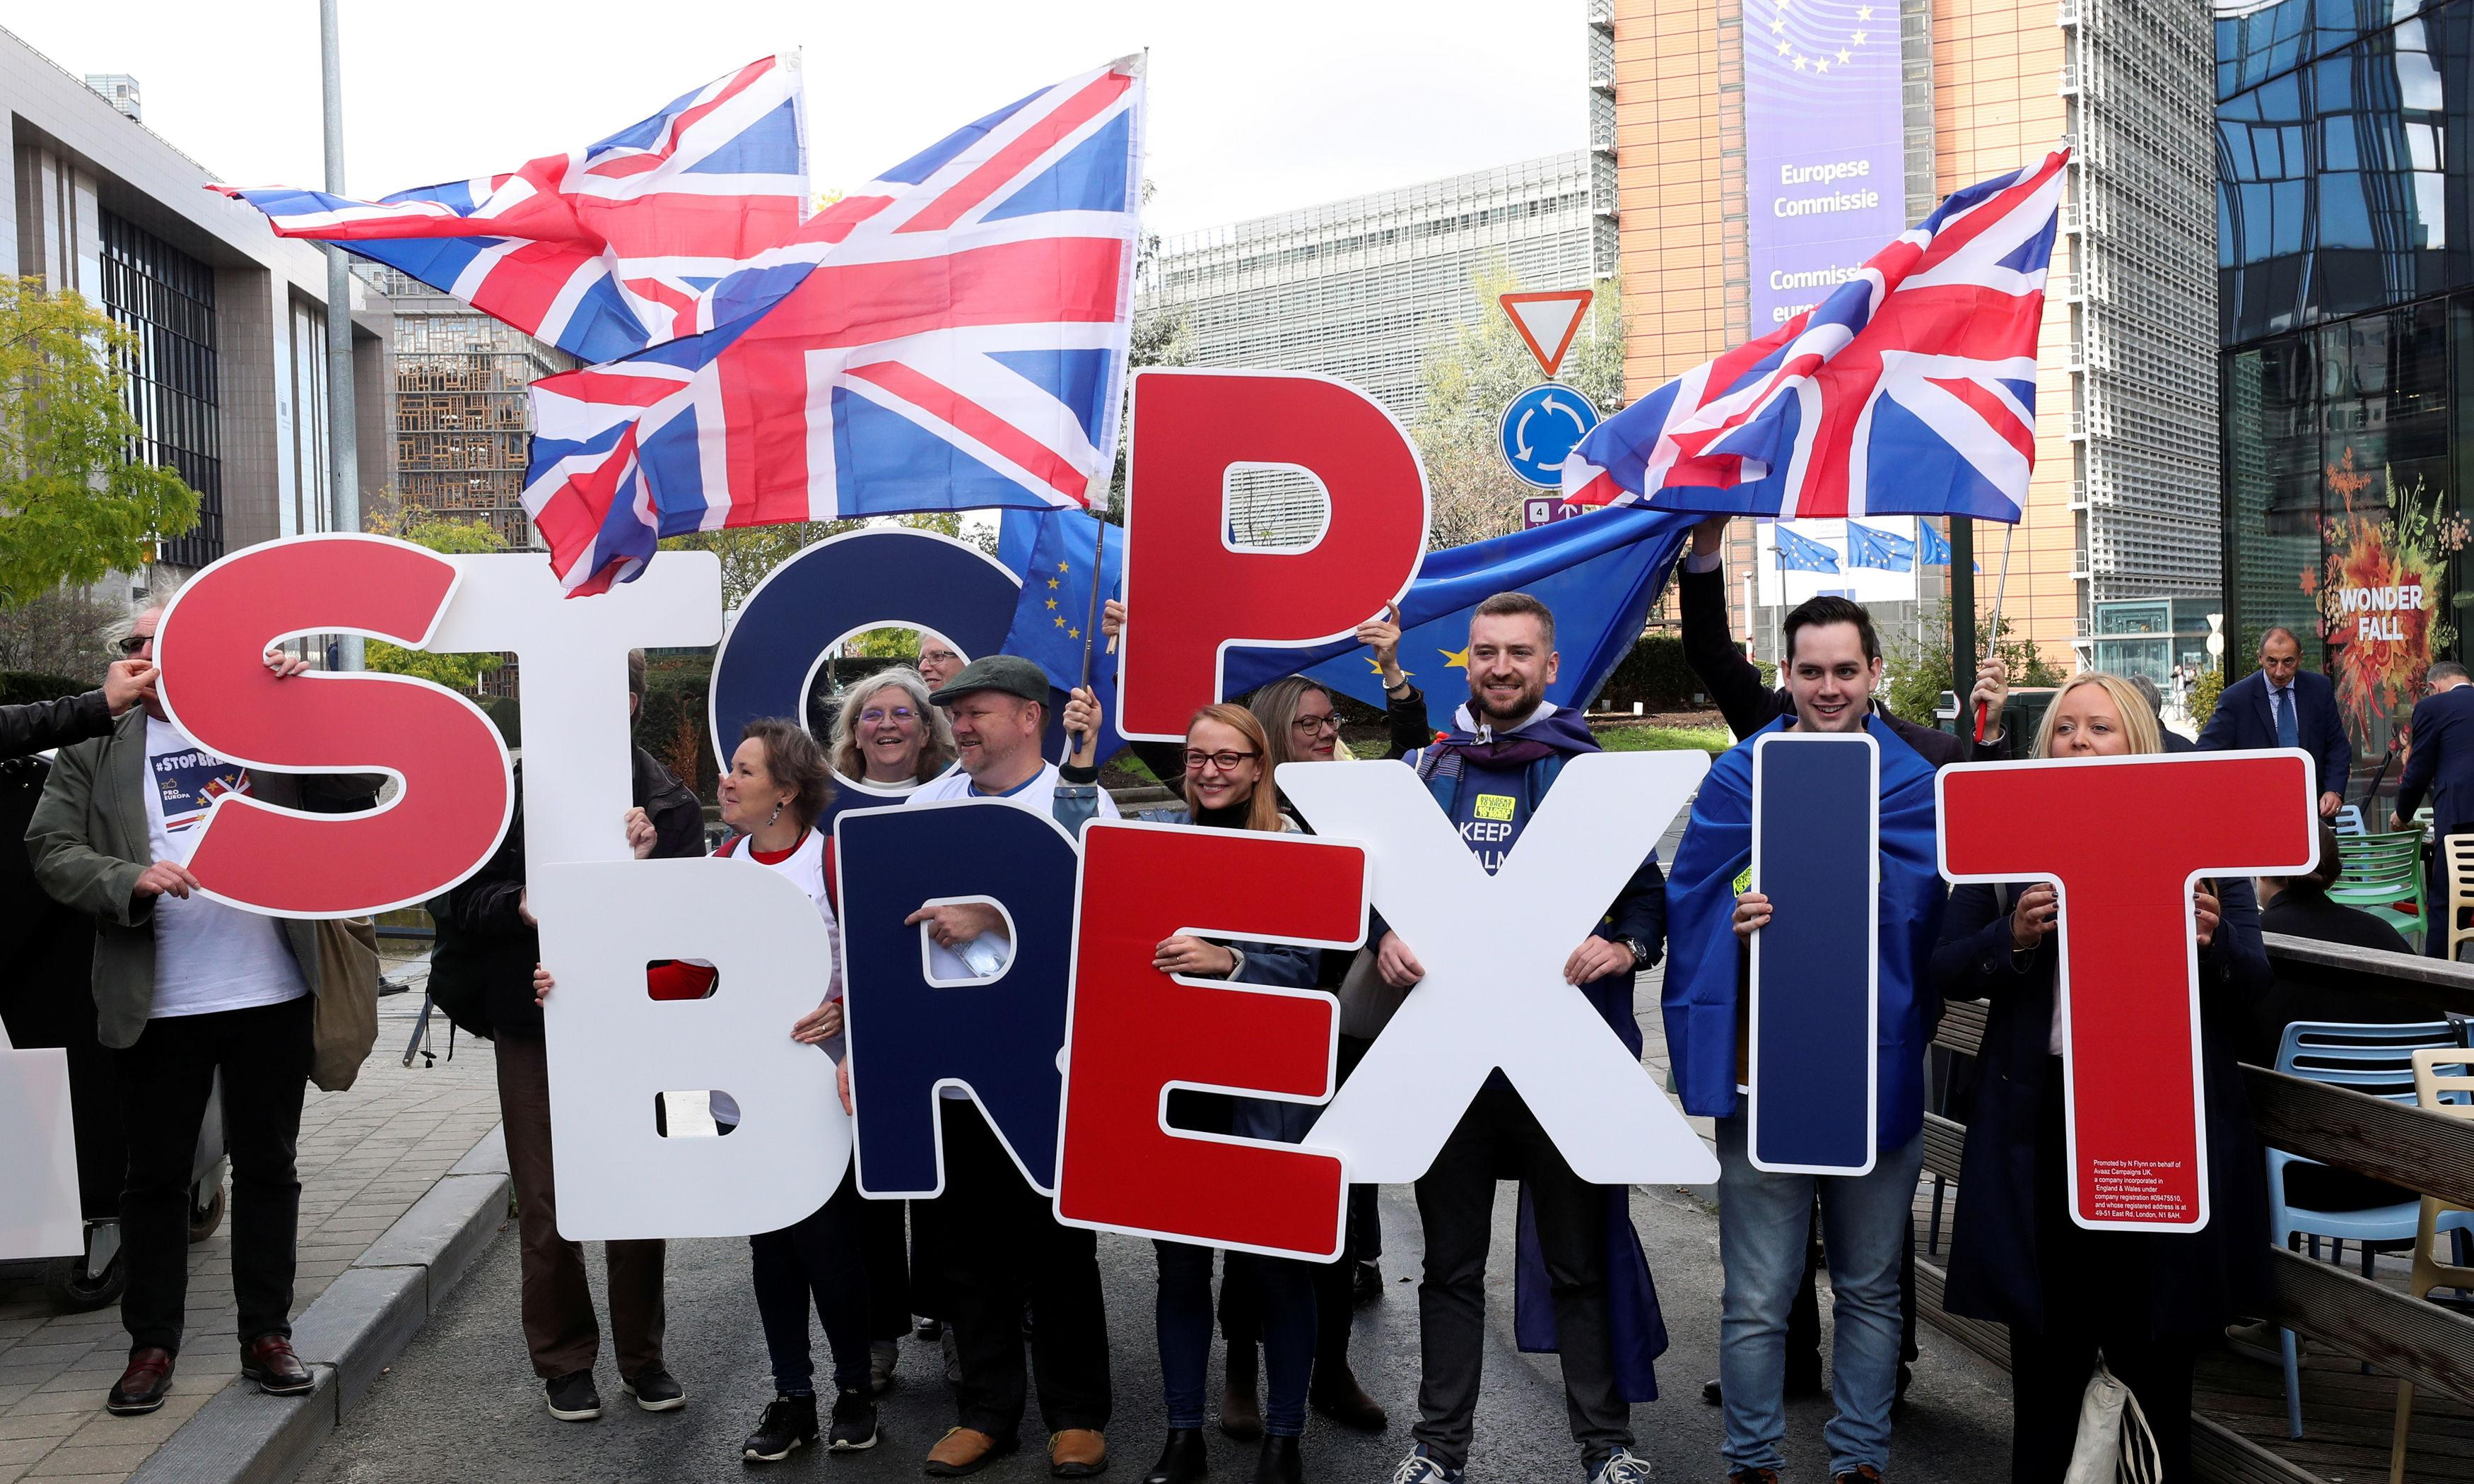 It's not just British leavers – the rest of Europe is responsible for Brexit, too